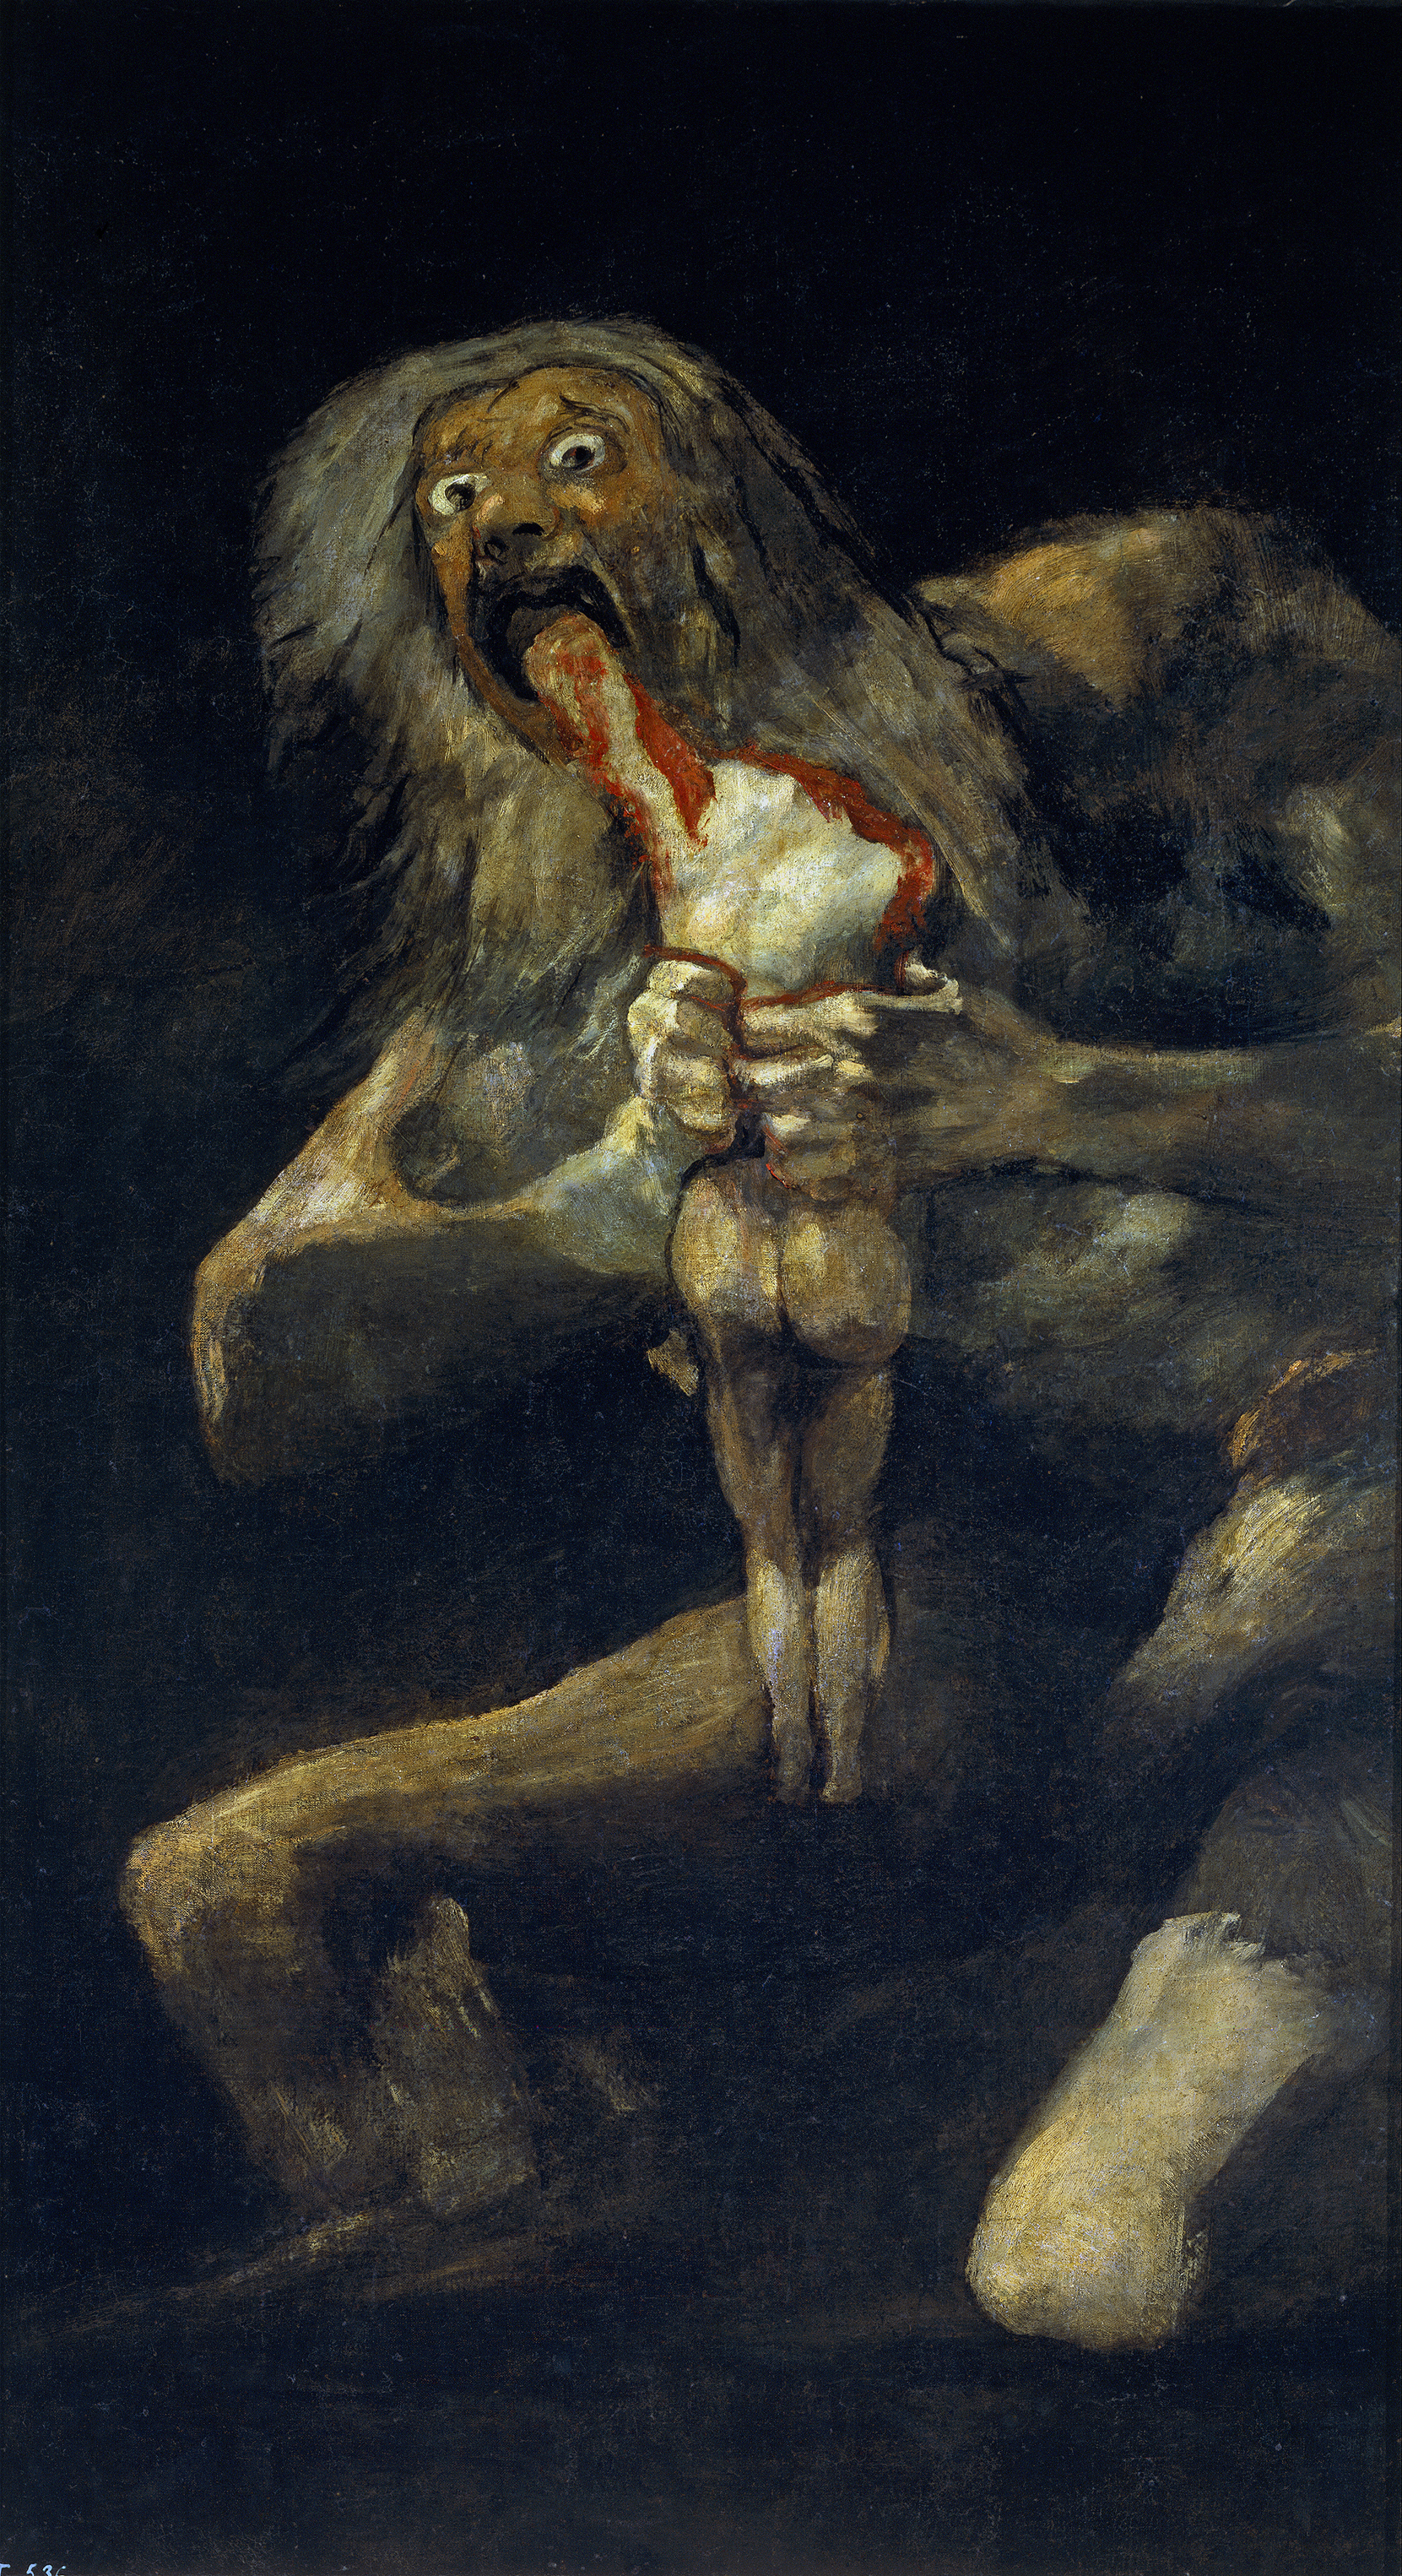 Saturn Devouring His Son by Francisco Goya